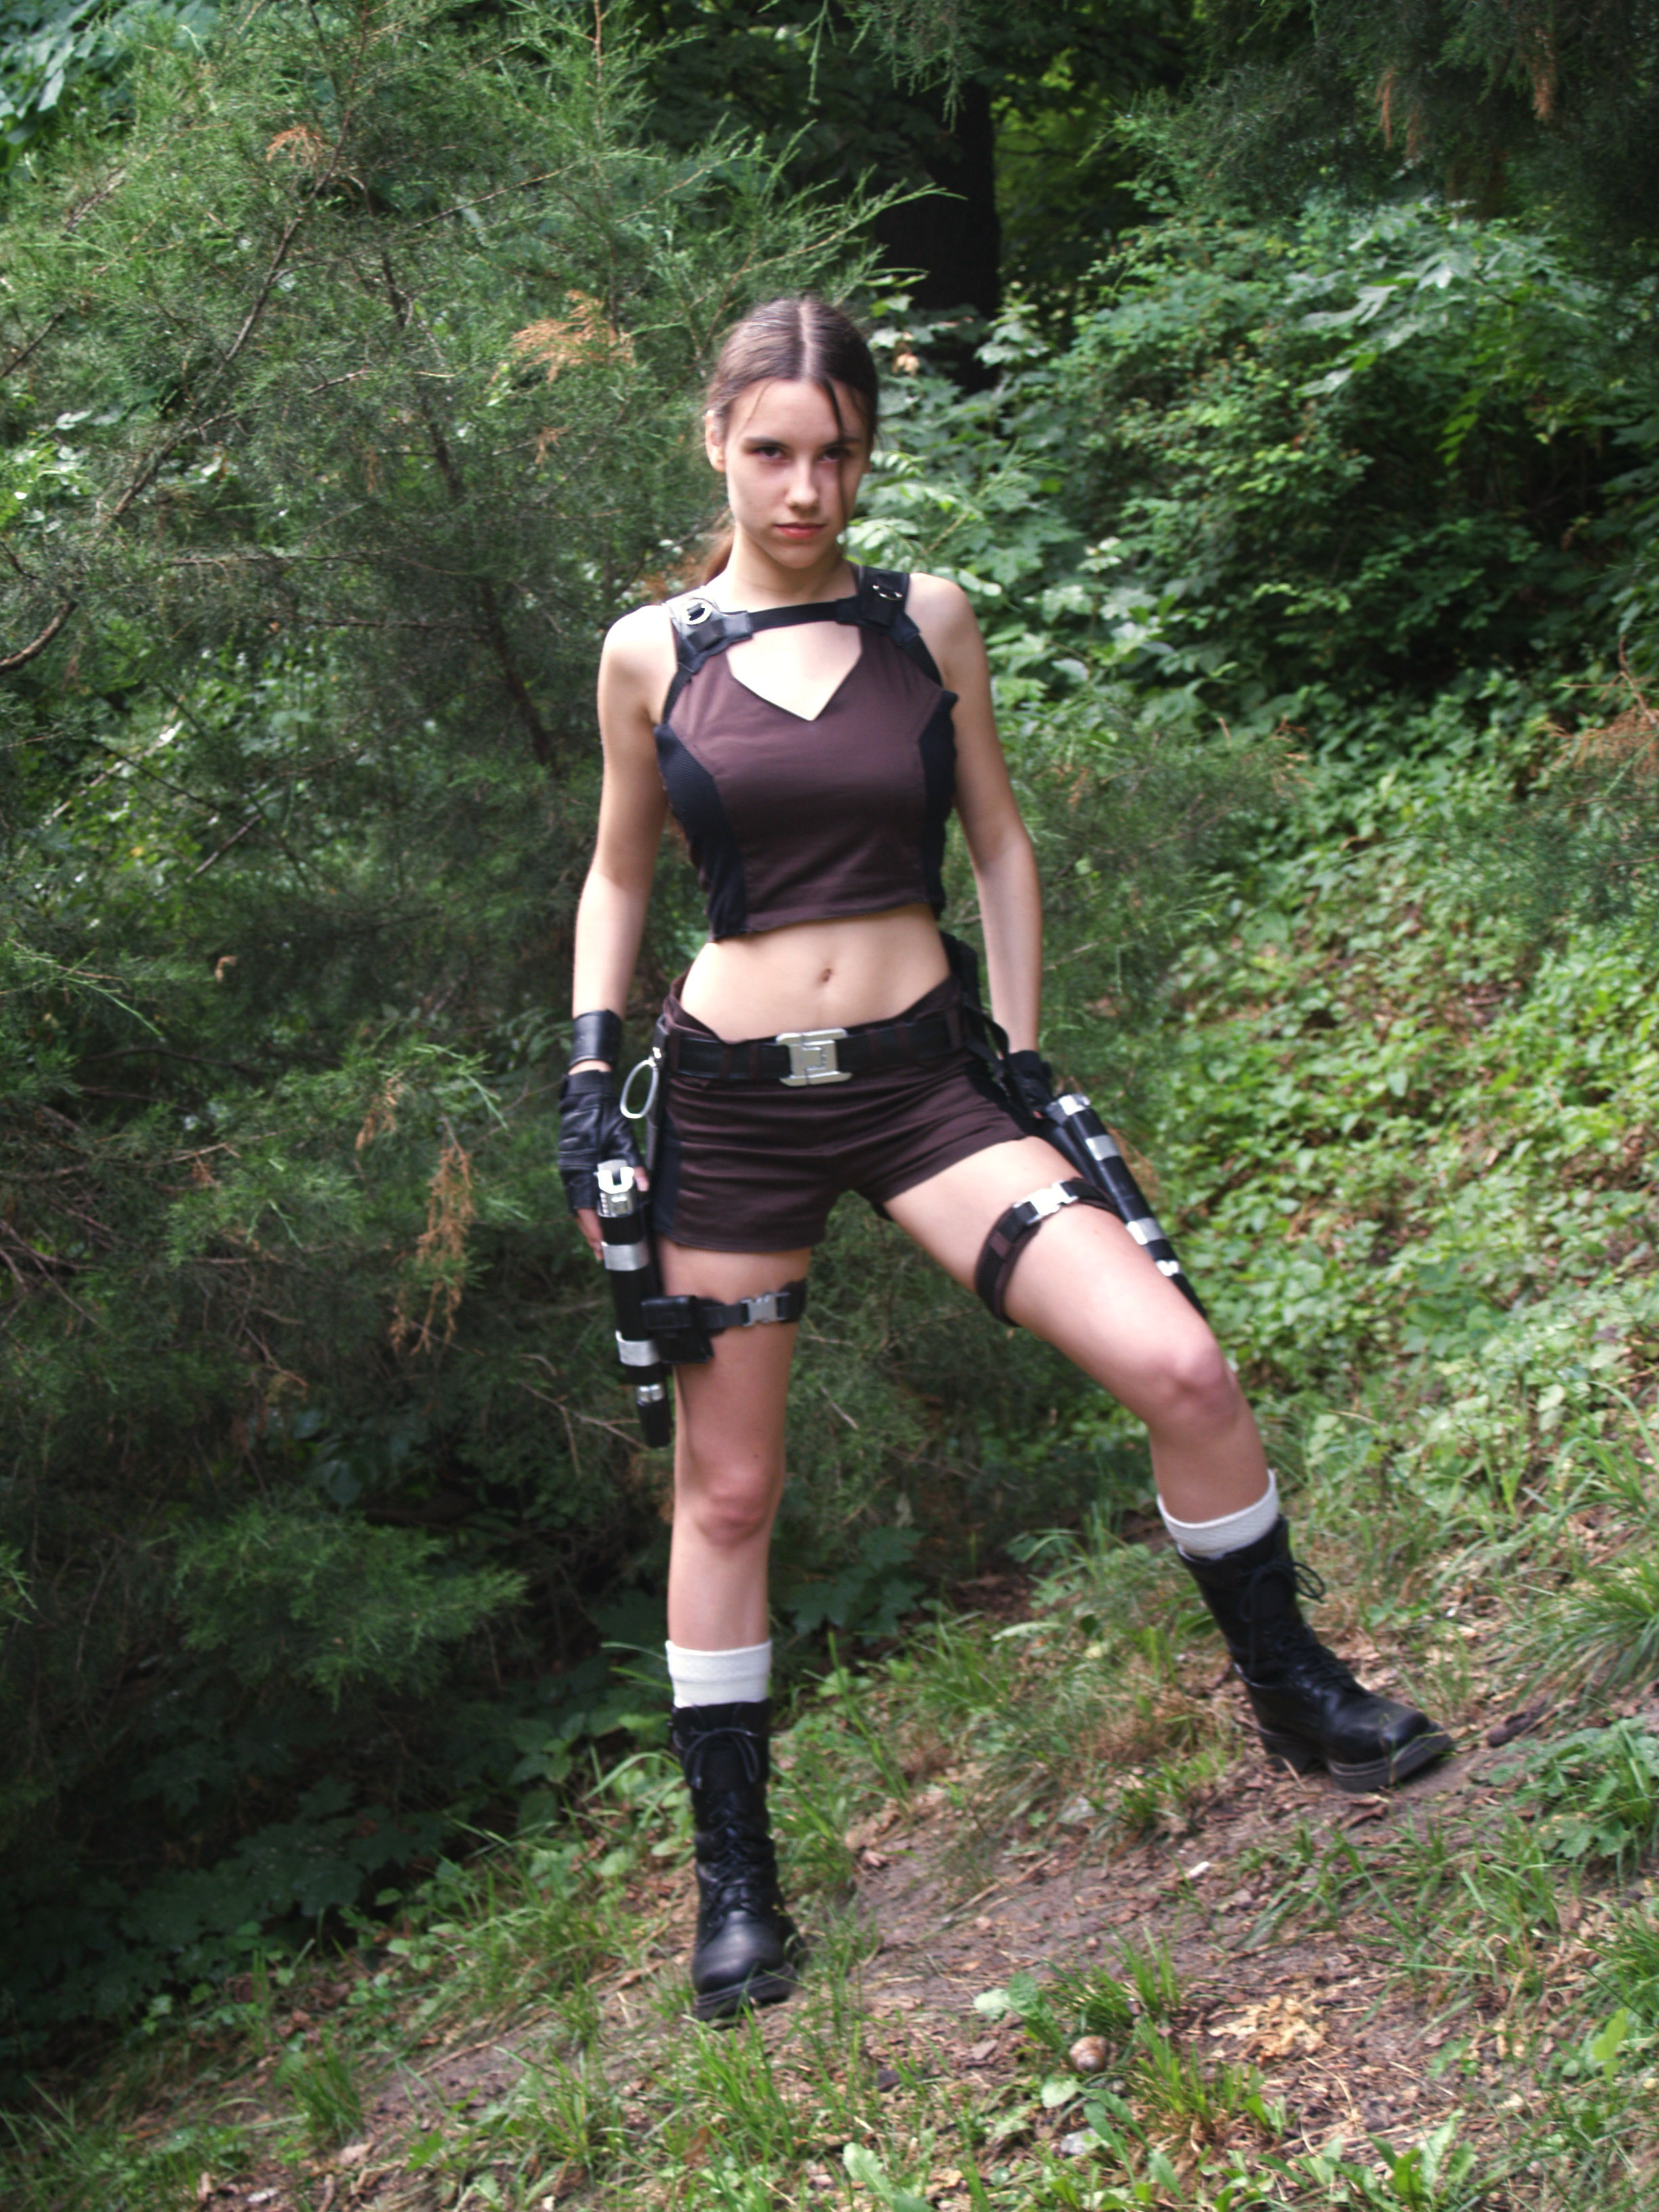 Photo lara croft pornographie hentay film